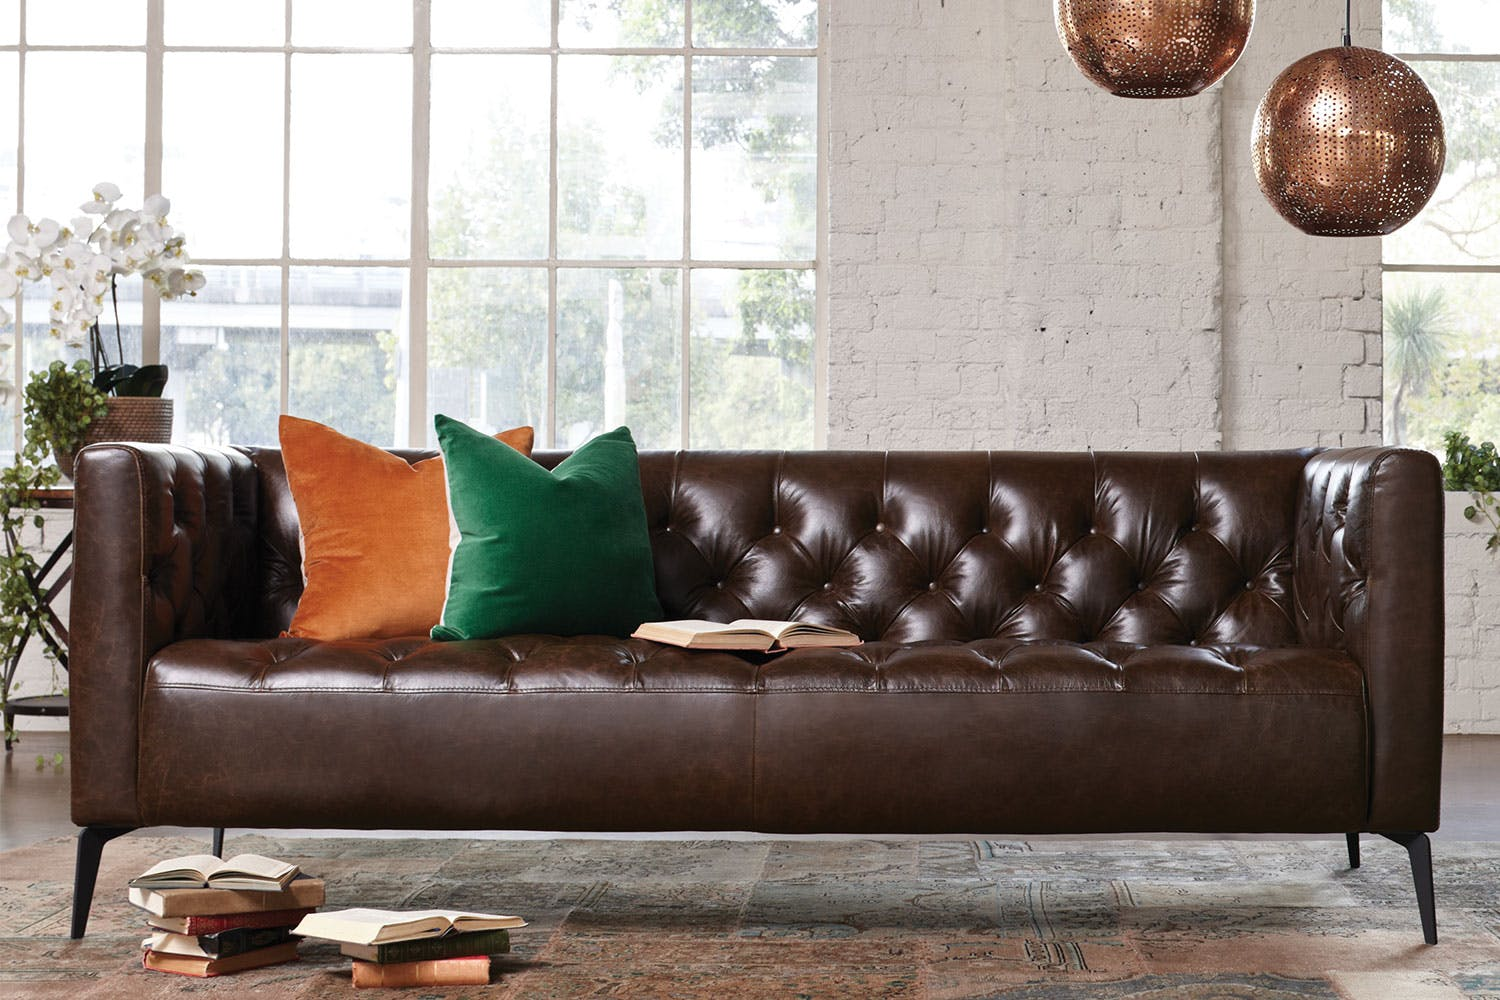 Canelli 3 seater leather sofa by debonaire furniture harvey norman new zealand